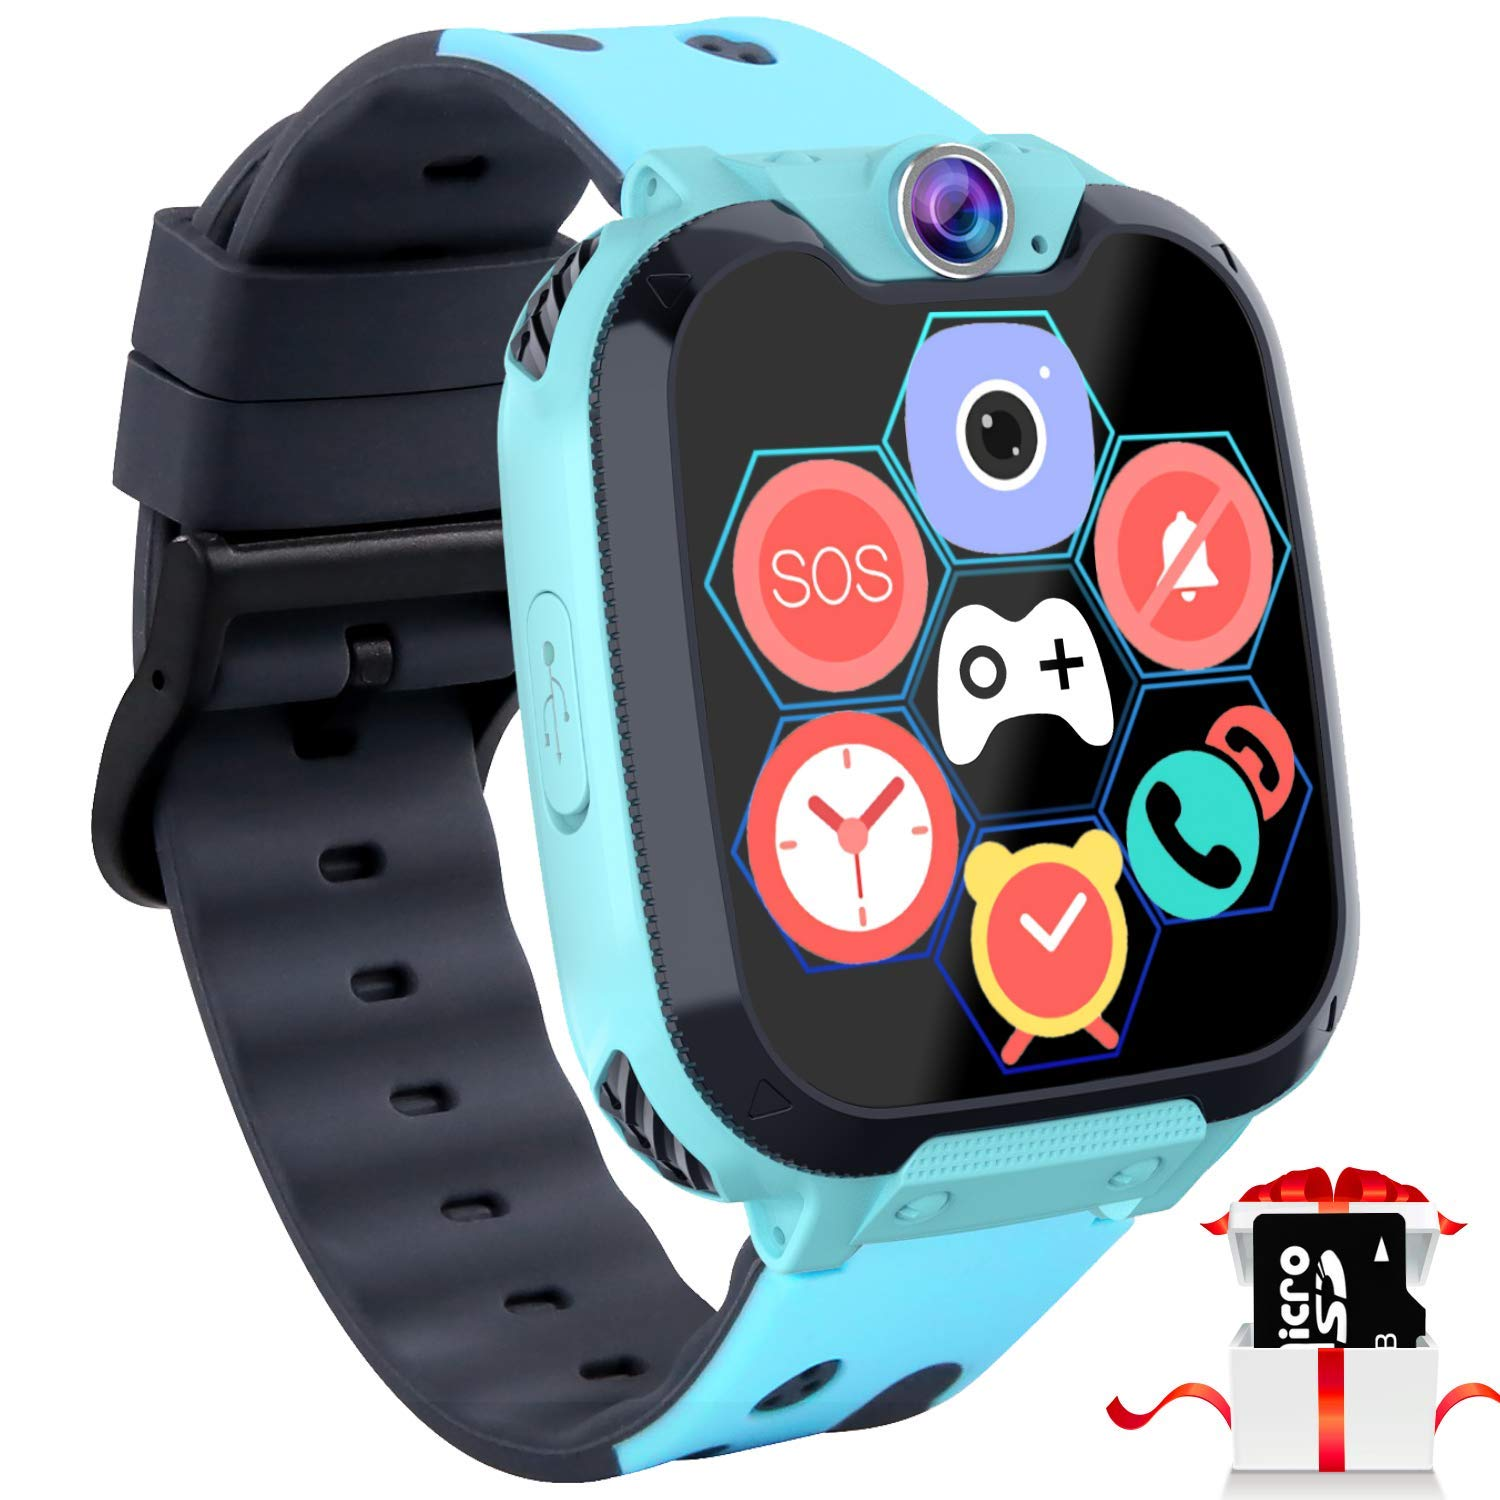 "Kids Game Smart Watch Phone - 1.54"" Touch Screen Game Smartwatches with [1GB Micro SD Card] Call SOS Camera 7 Games Alarm Clock Music Player Record ..."